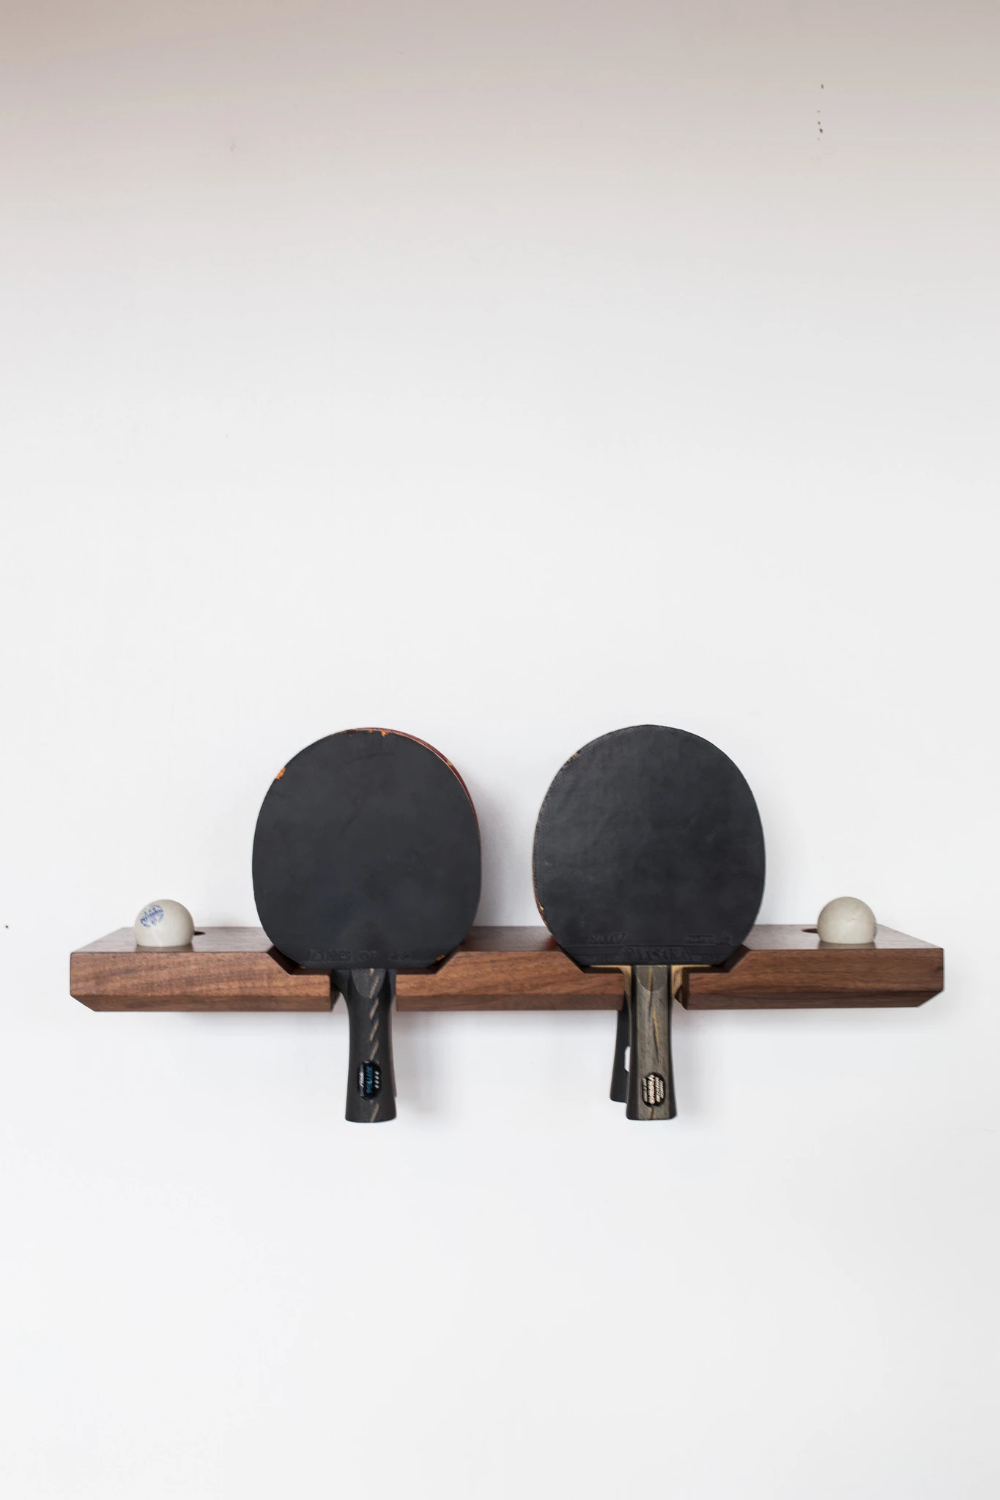 Table Tennis Room Design: Banger Ping Pong Paddle Holders